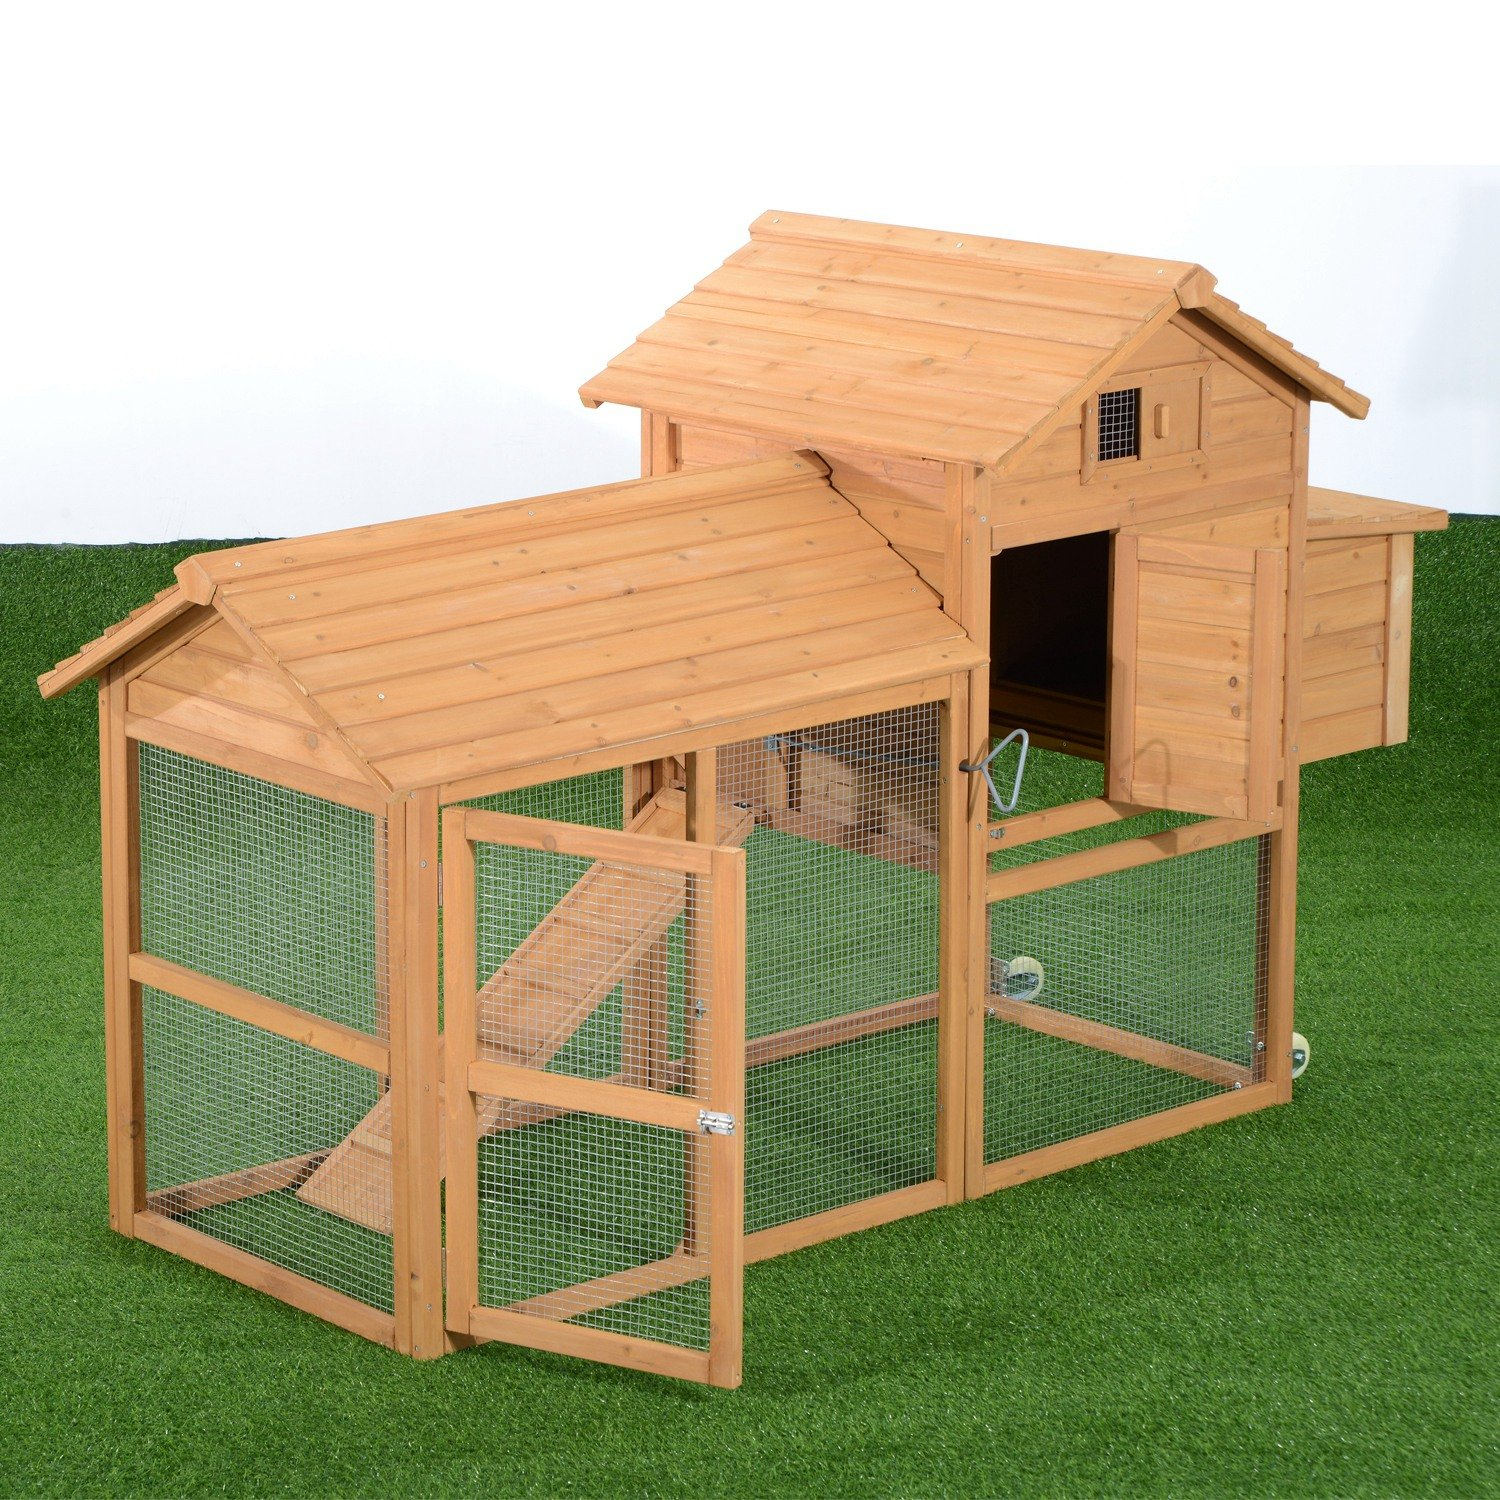 Pawhut Deluxe Portable Backyard Chicken Coop w/ Fenced Run and Wheels by PawHut